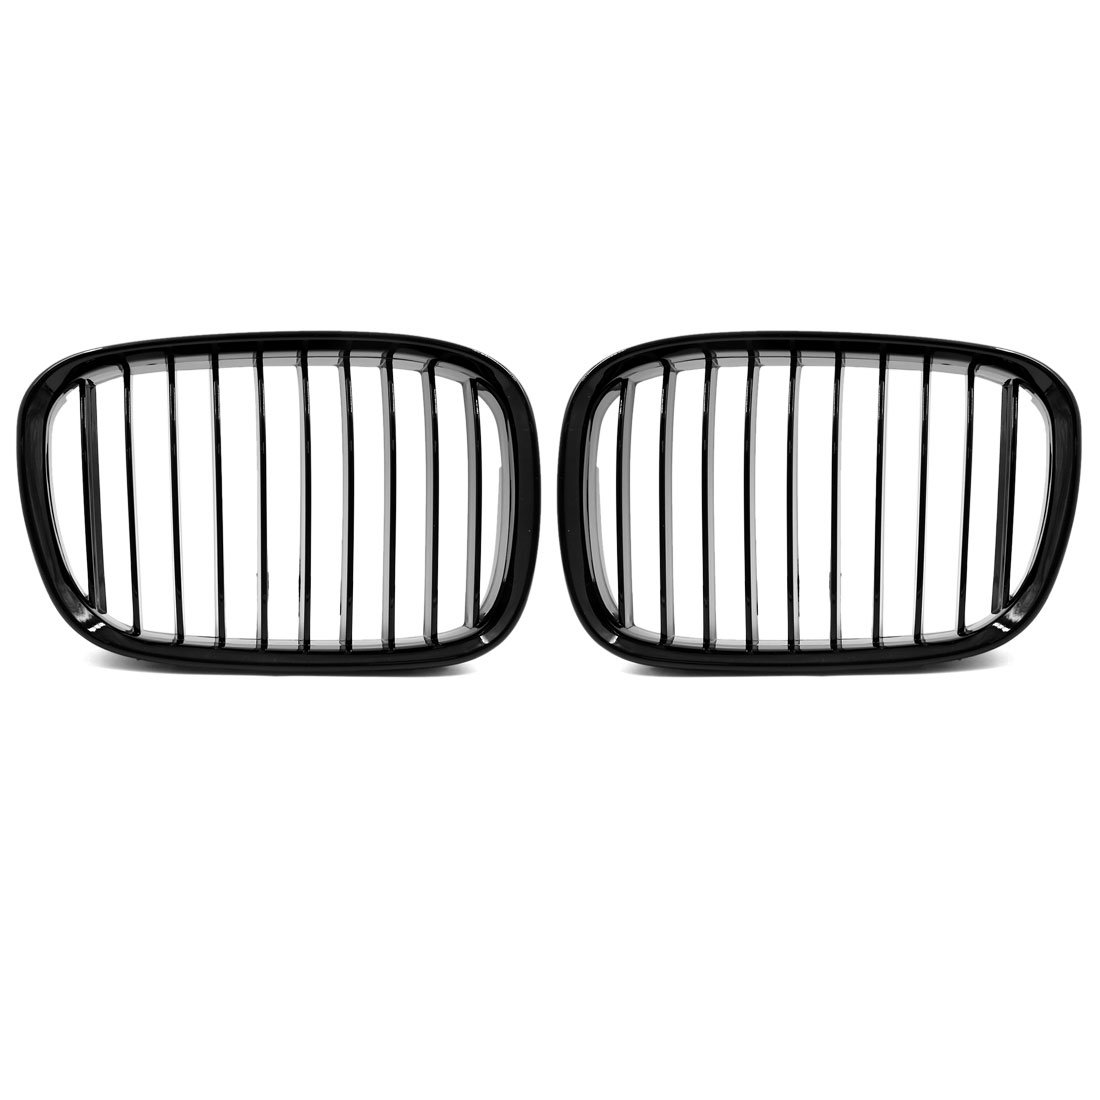 uxcell 2pcs Glossy Black Front Kidney Grille Grill for 1997-2003 BMW E39 5 Series 525i 528i 530i 540i M5 4-Door